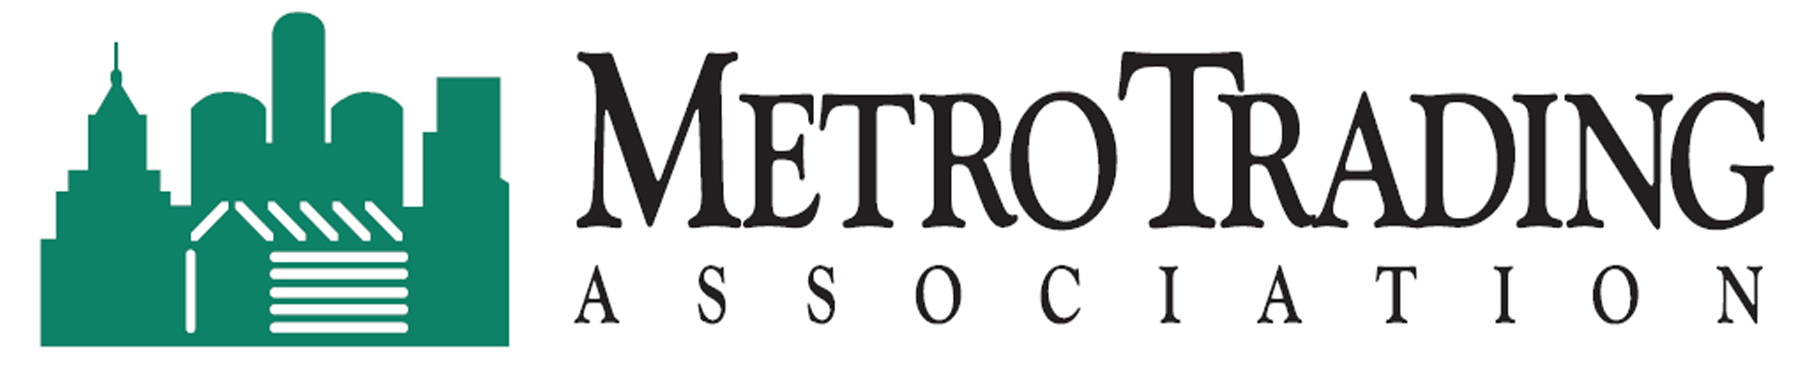 events | Metro Trading Association